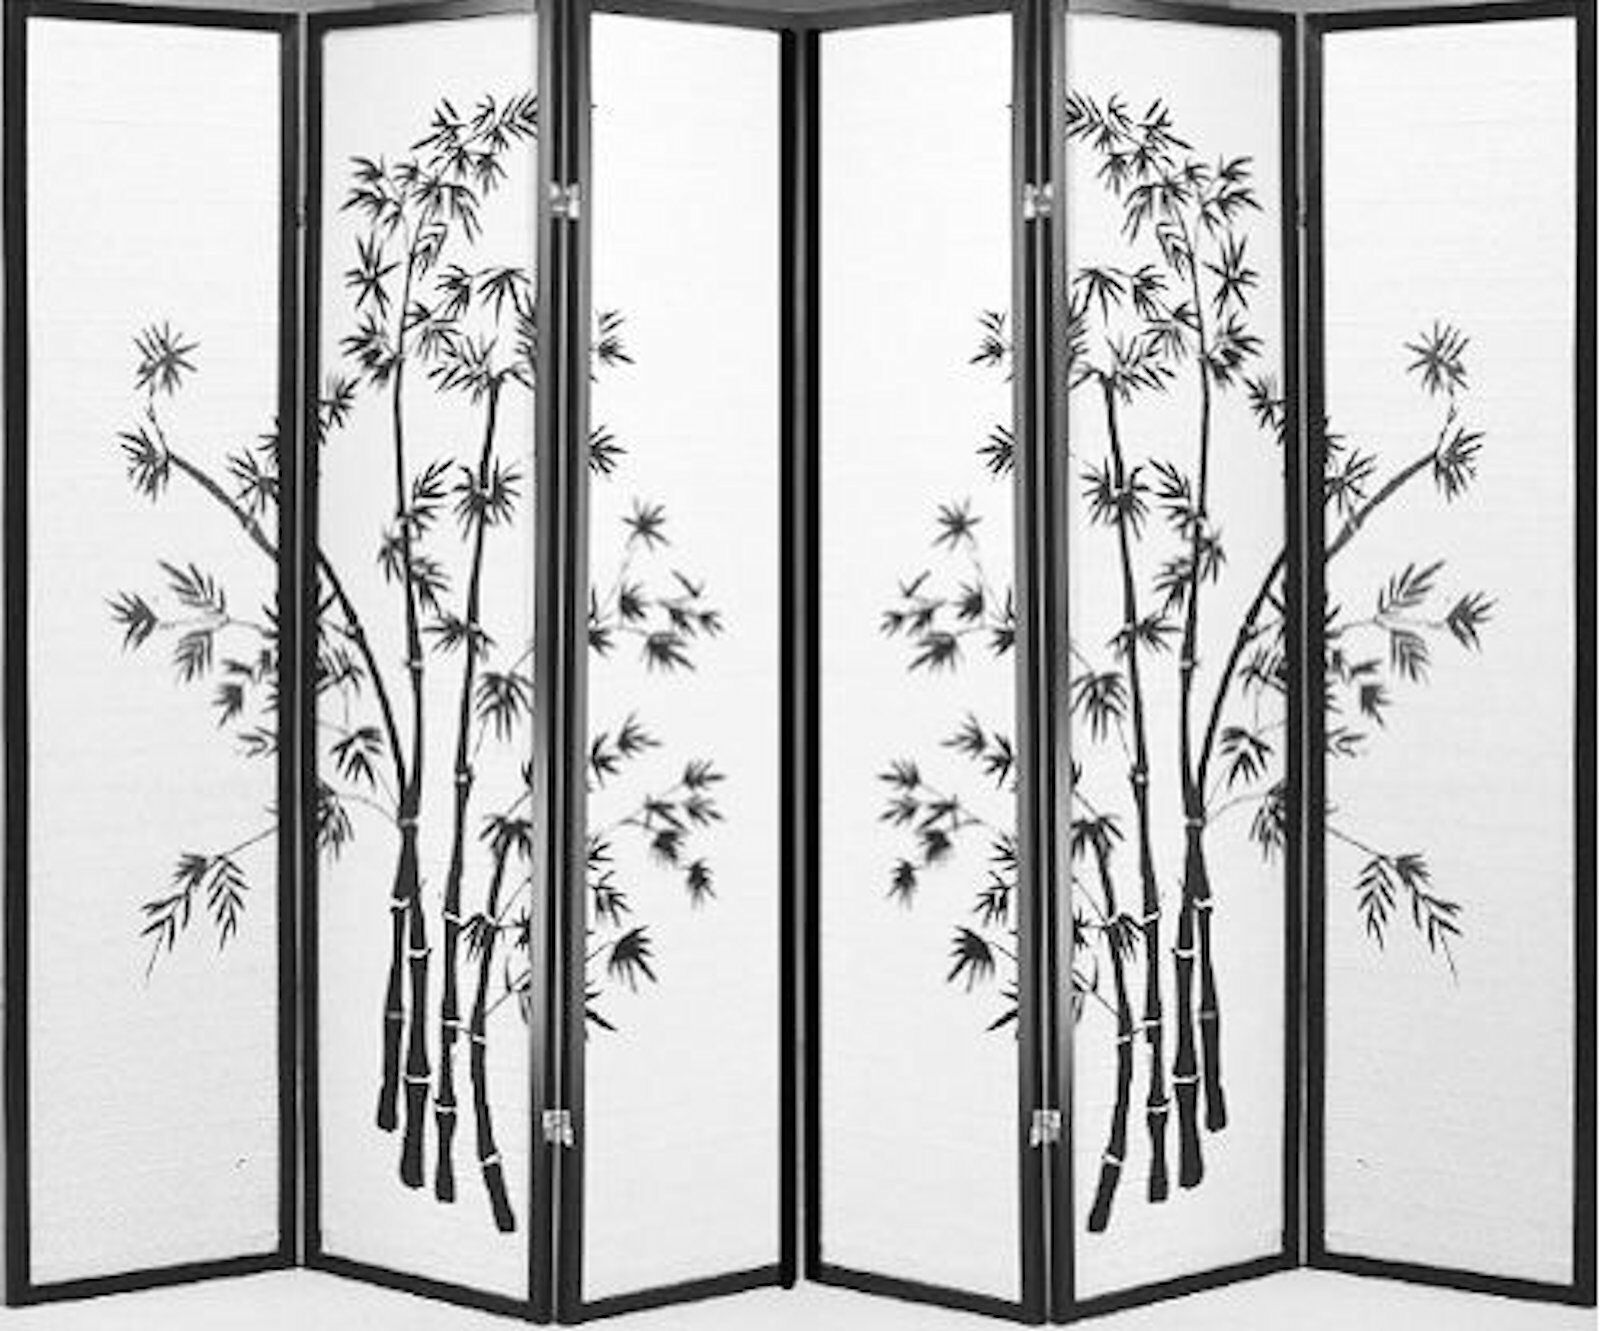 Купить Legacy Decor 606 - 8 6 4 & 3 Panel Wood Shoji Room Divider Screen Bamboo Print